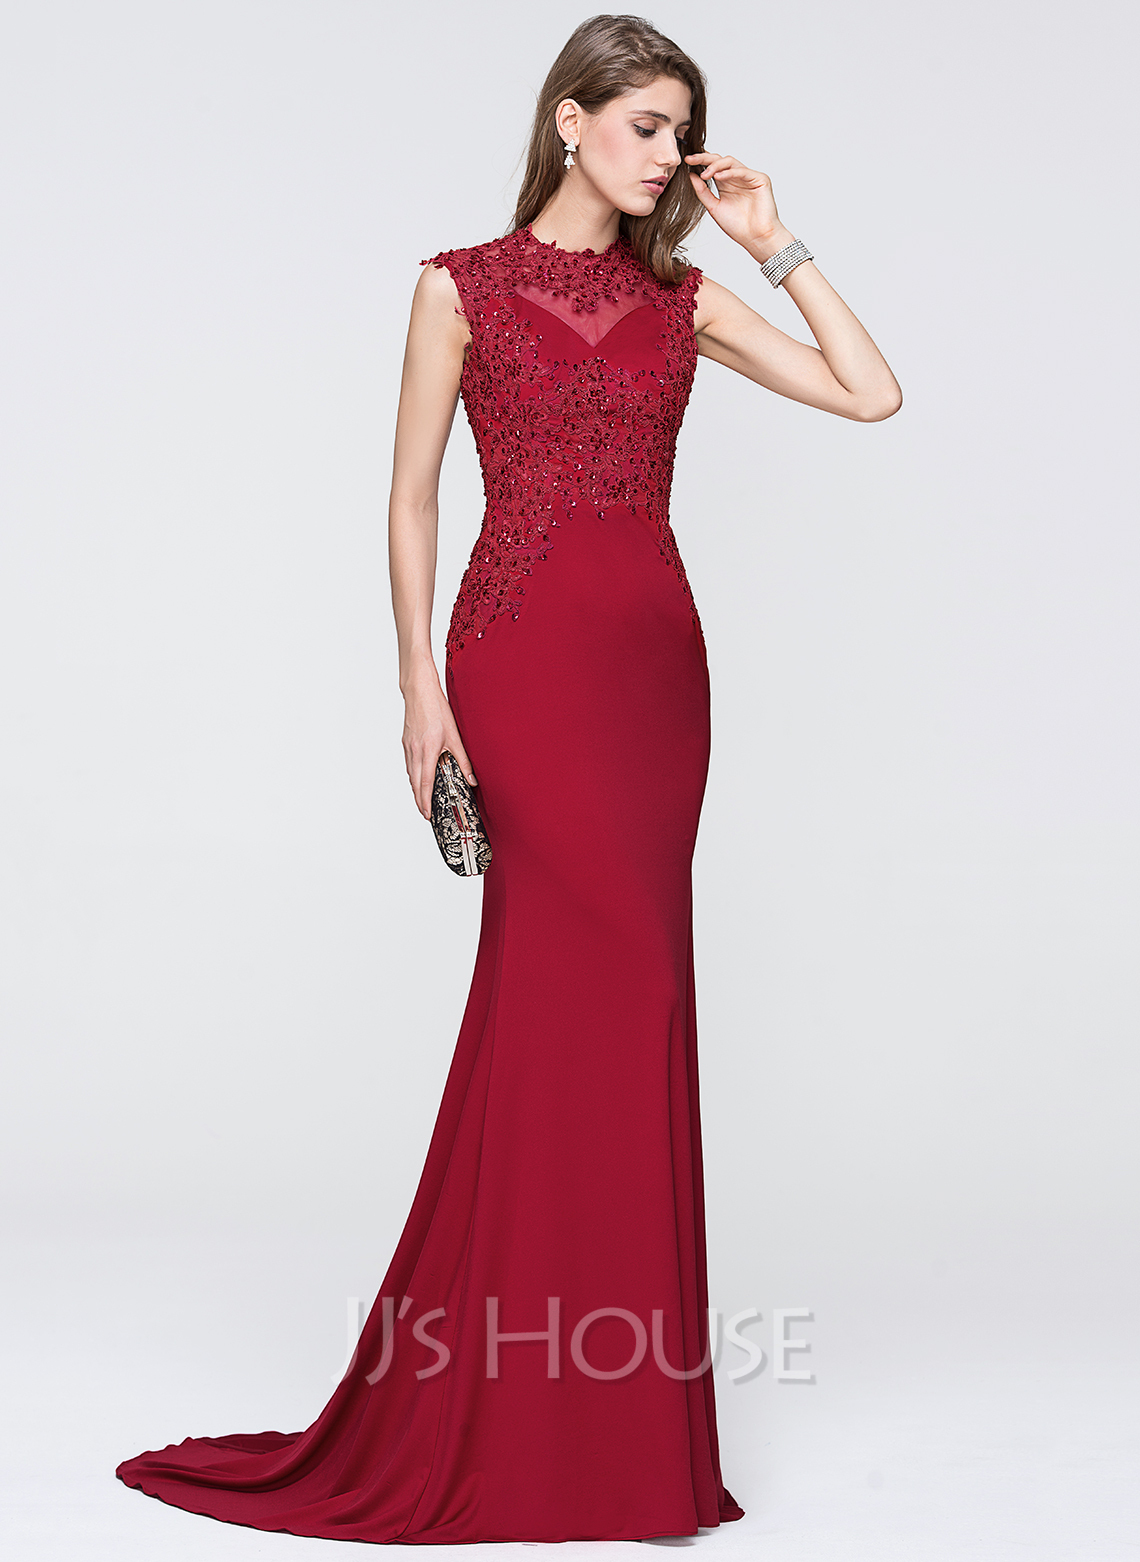 2ce28a5201ff Trumpet/Mermaid Scoop Neck Sweep Train Jersey Evening Dress With Beading  Sequins. Loading zoom